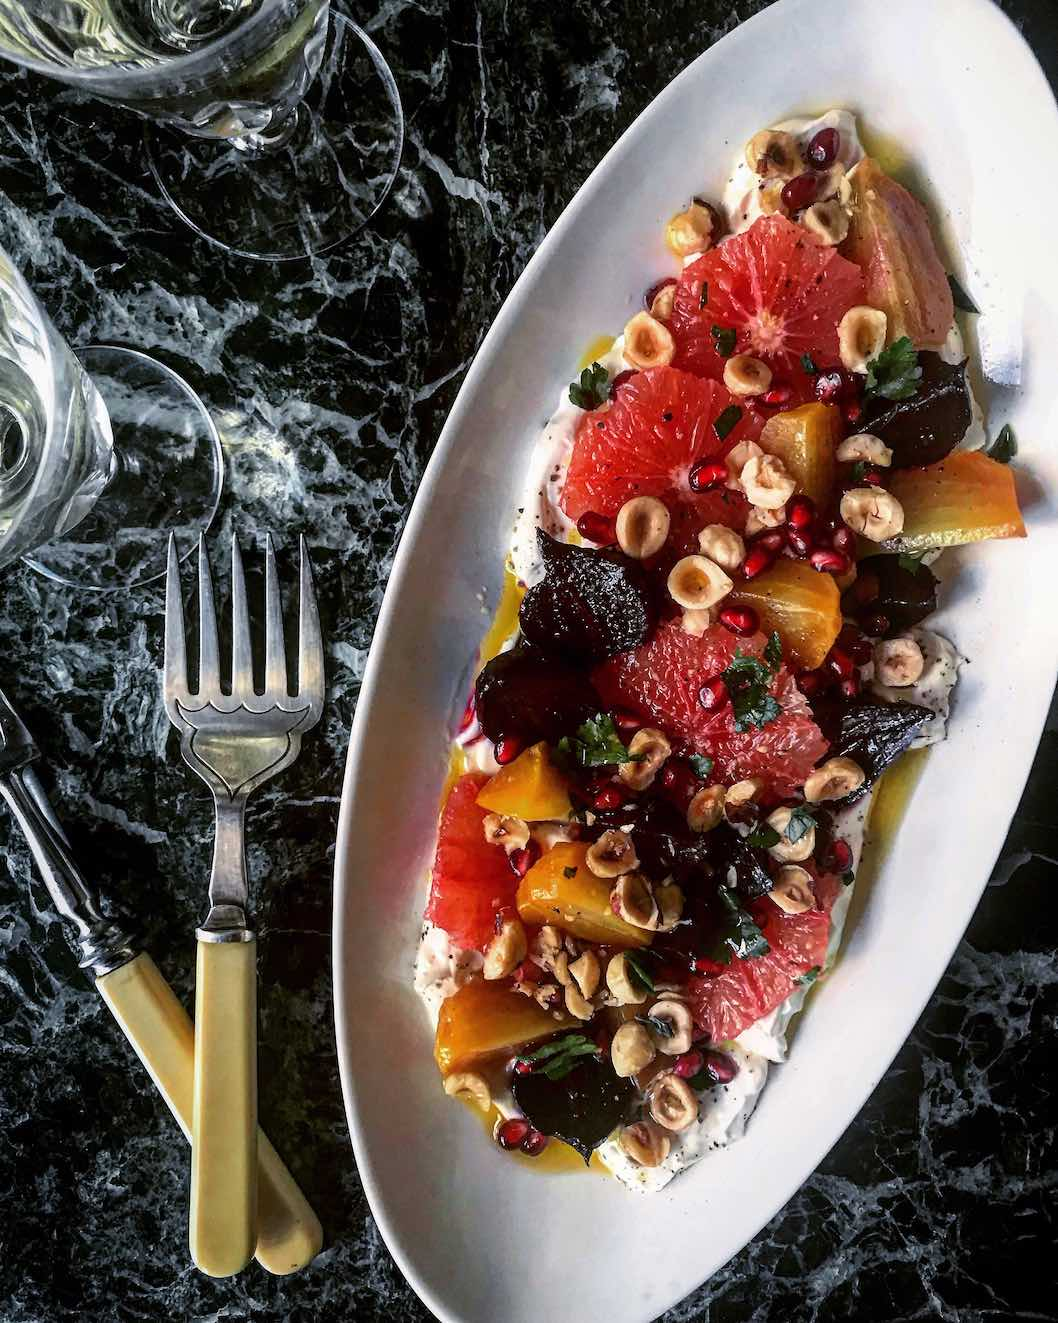 Recipe: Winter salad with roasted beets, blood oranges and hazelnuts